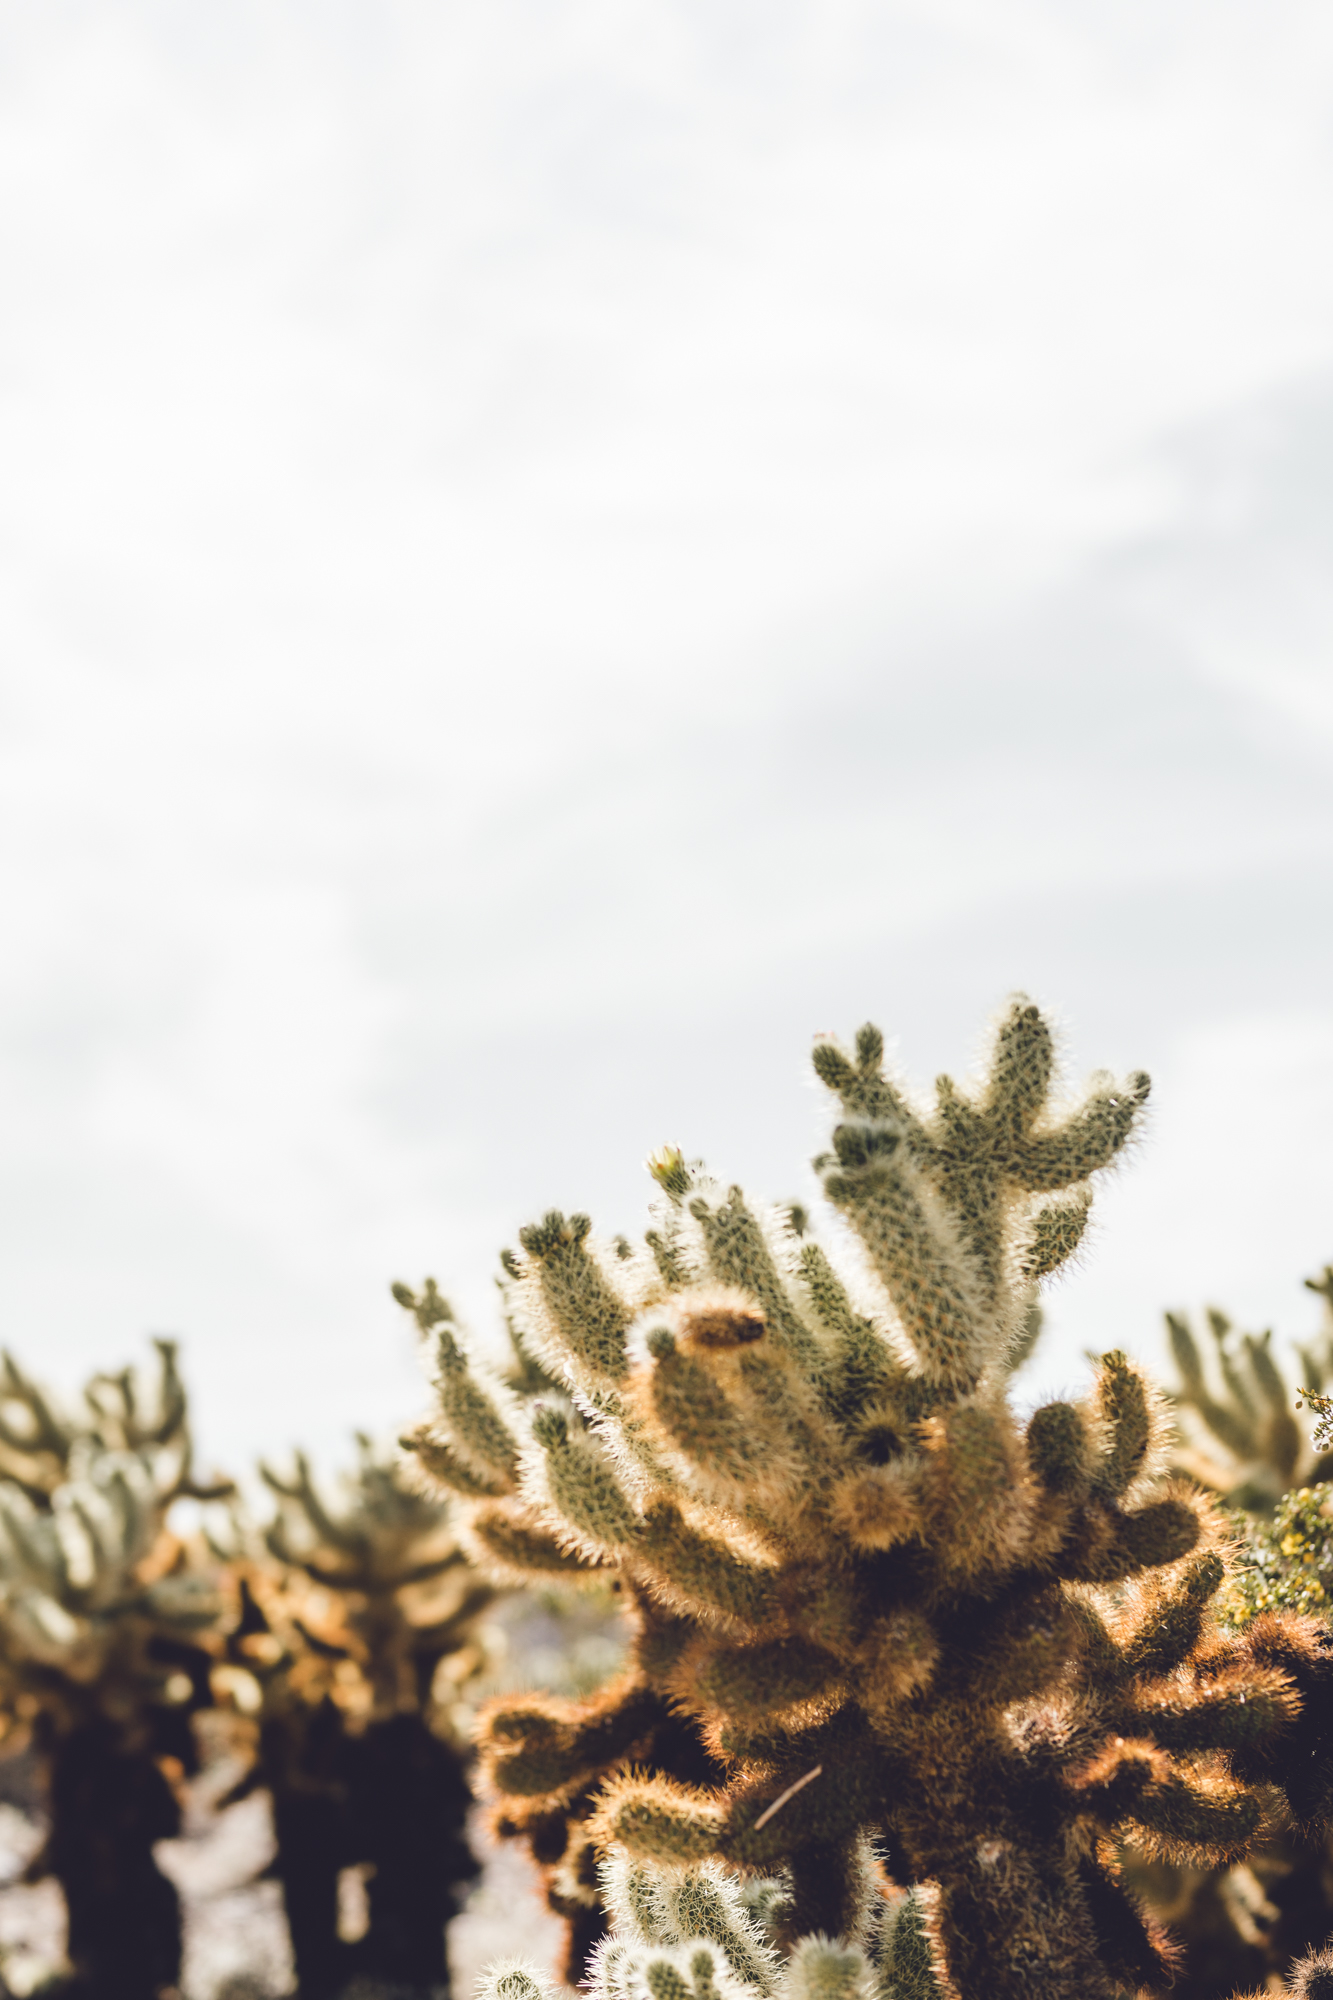 Rachel Off Duty: How to Spend 1 Day in the Central California Desert - Cholla Cactus Garden